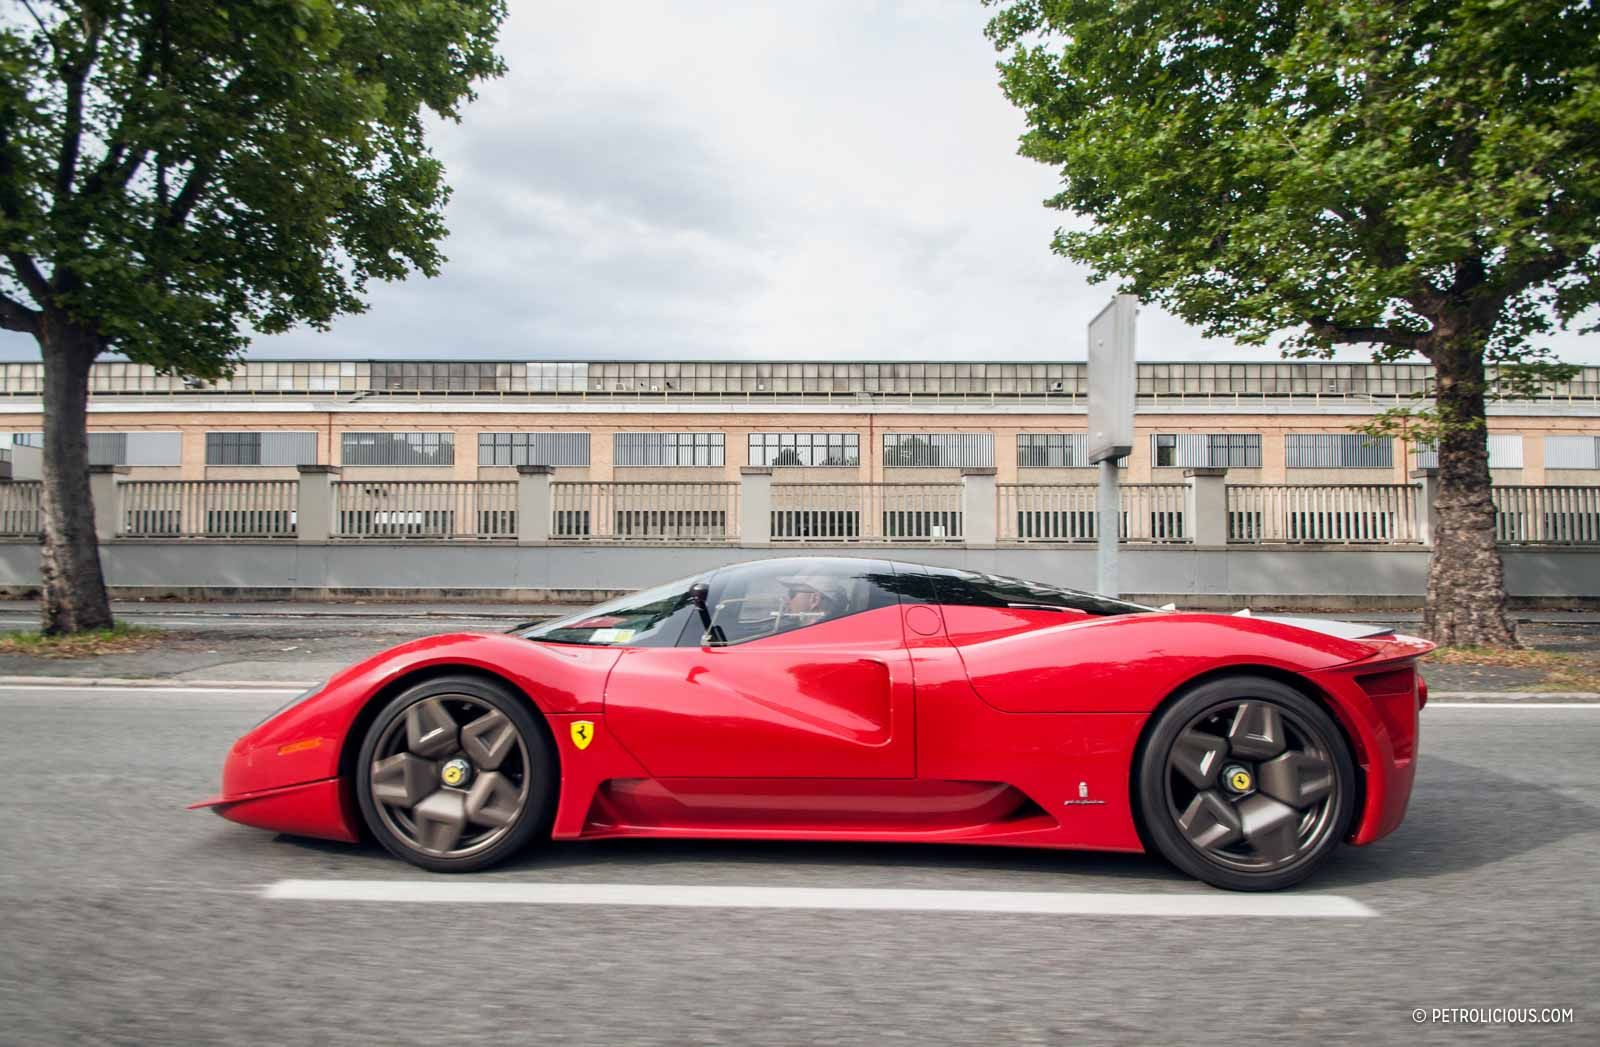 Ferrari P4 5 Futuristic Cars Dream Cars Super Cars